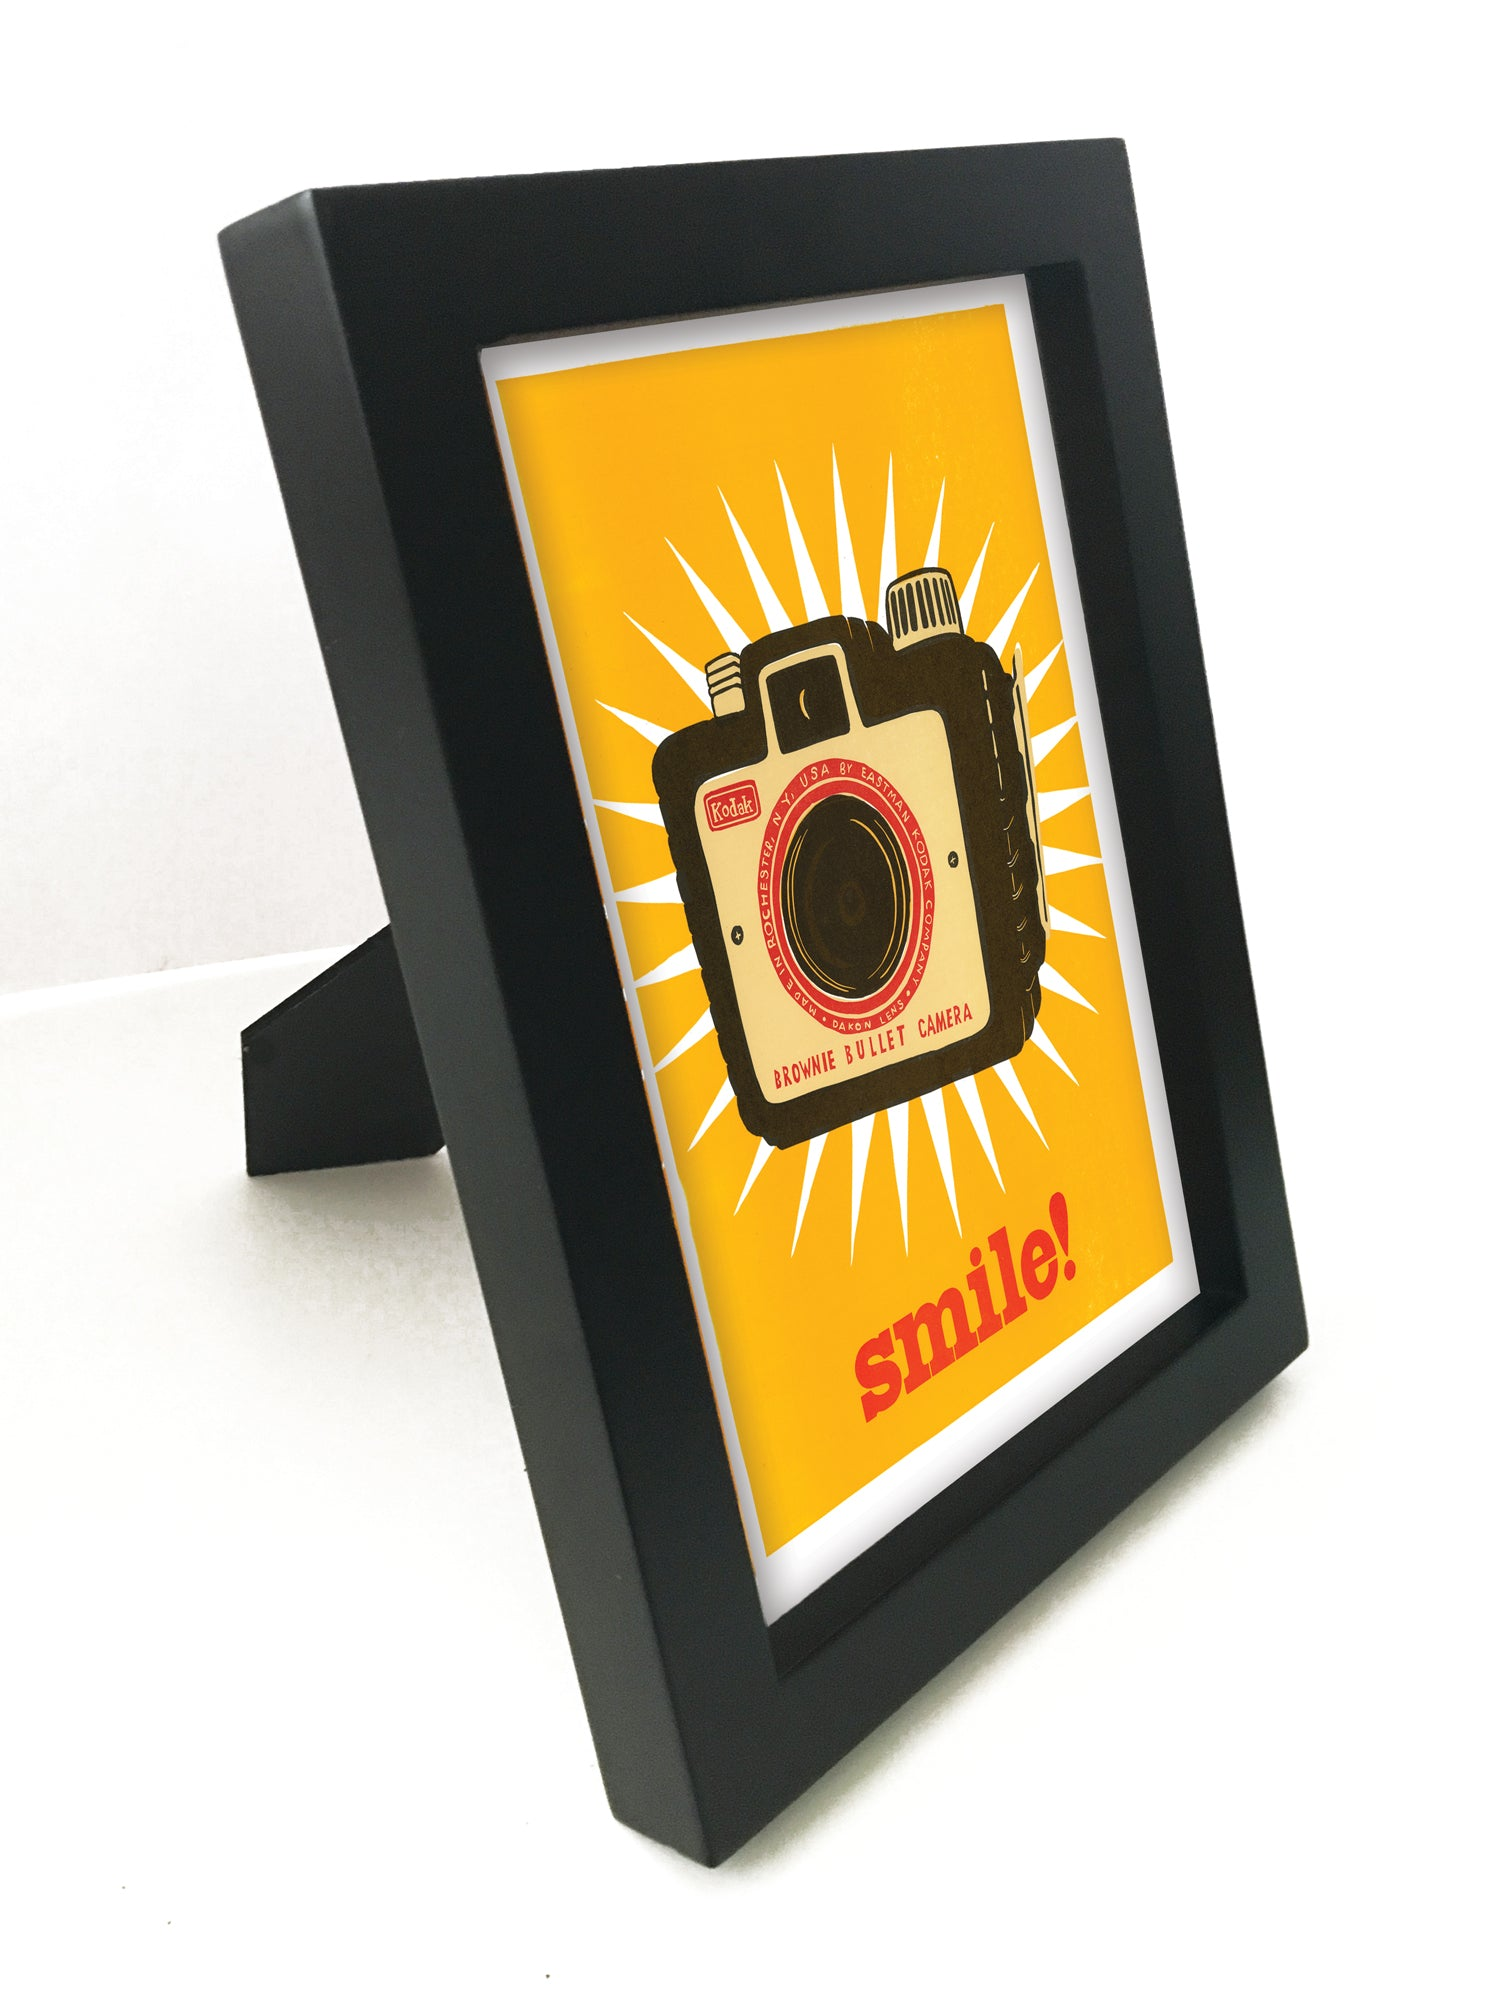 "Smile! 5"" x 7"" Framed Reproduction"